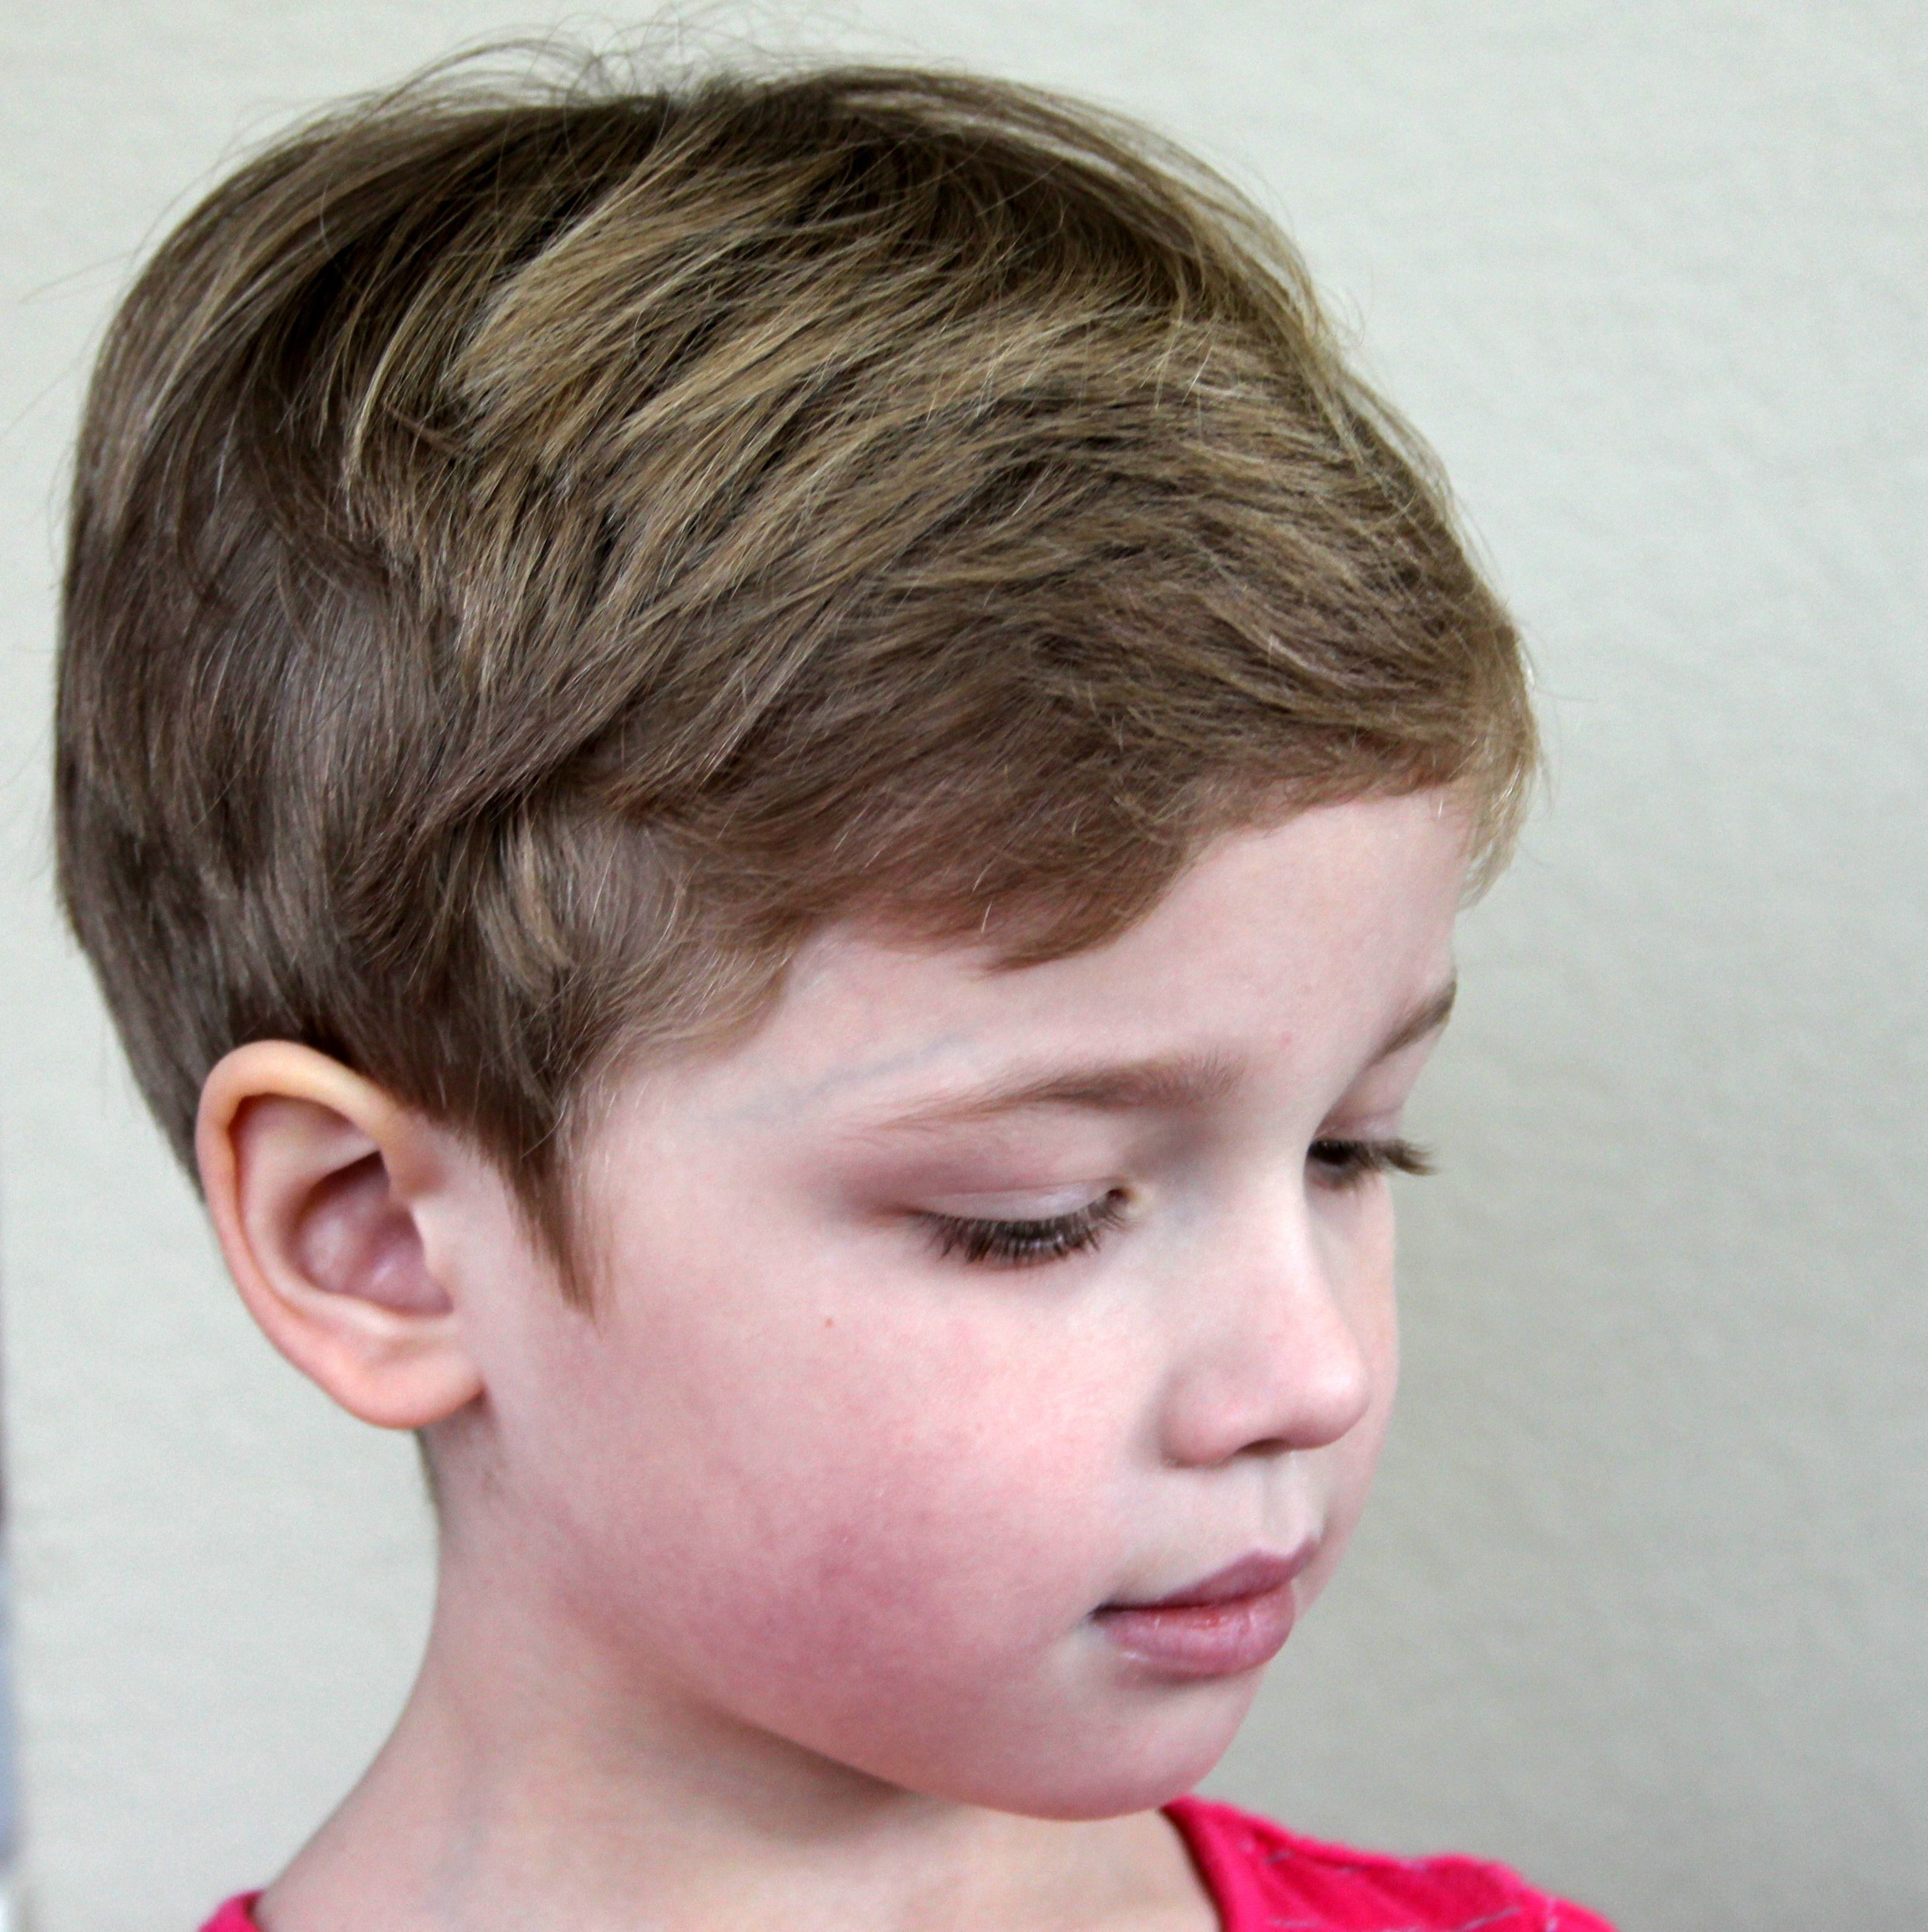 Pin on Pixie Cuts for Young Girls